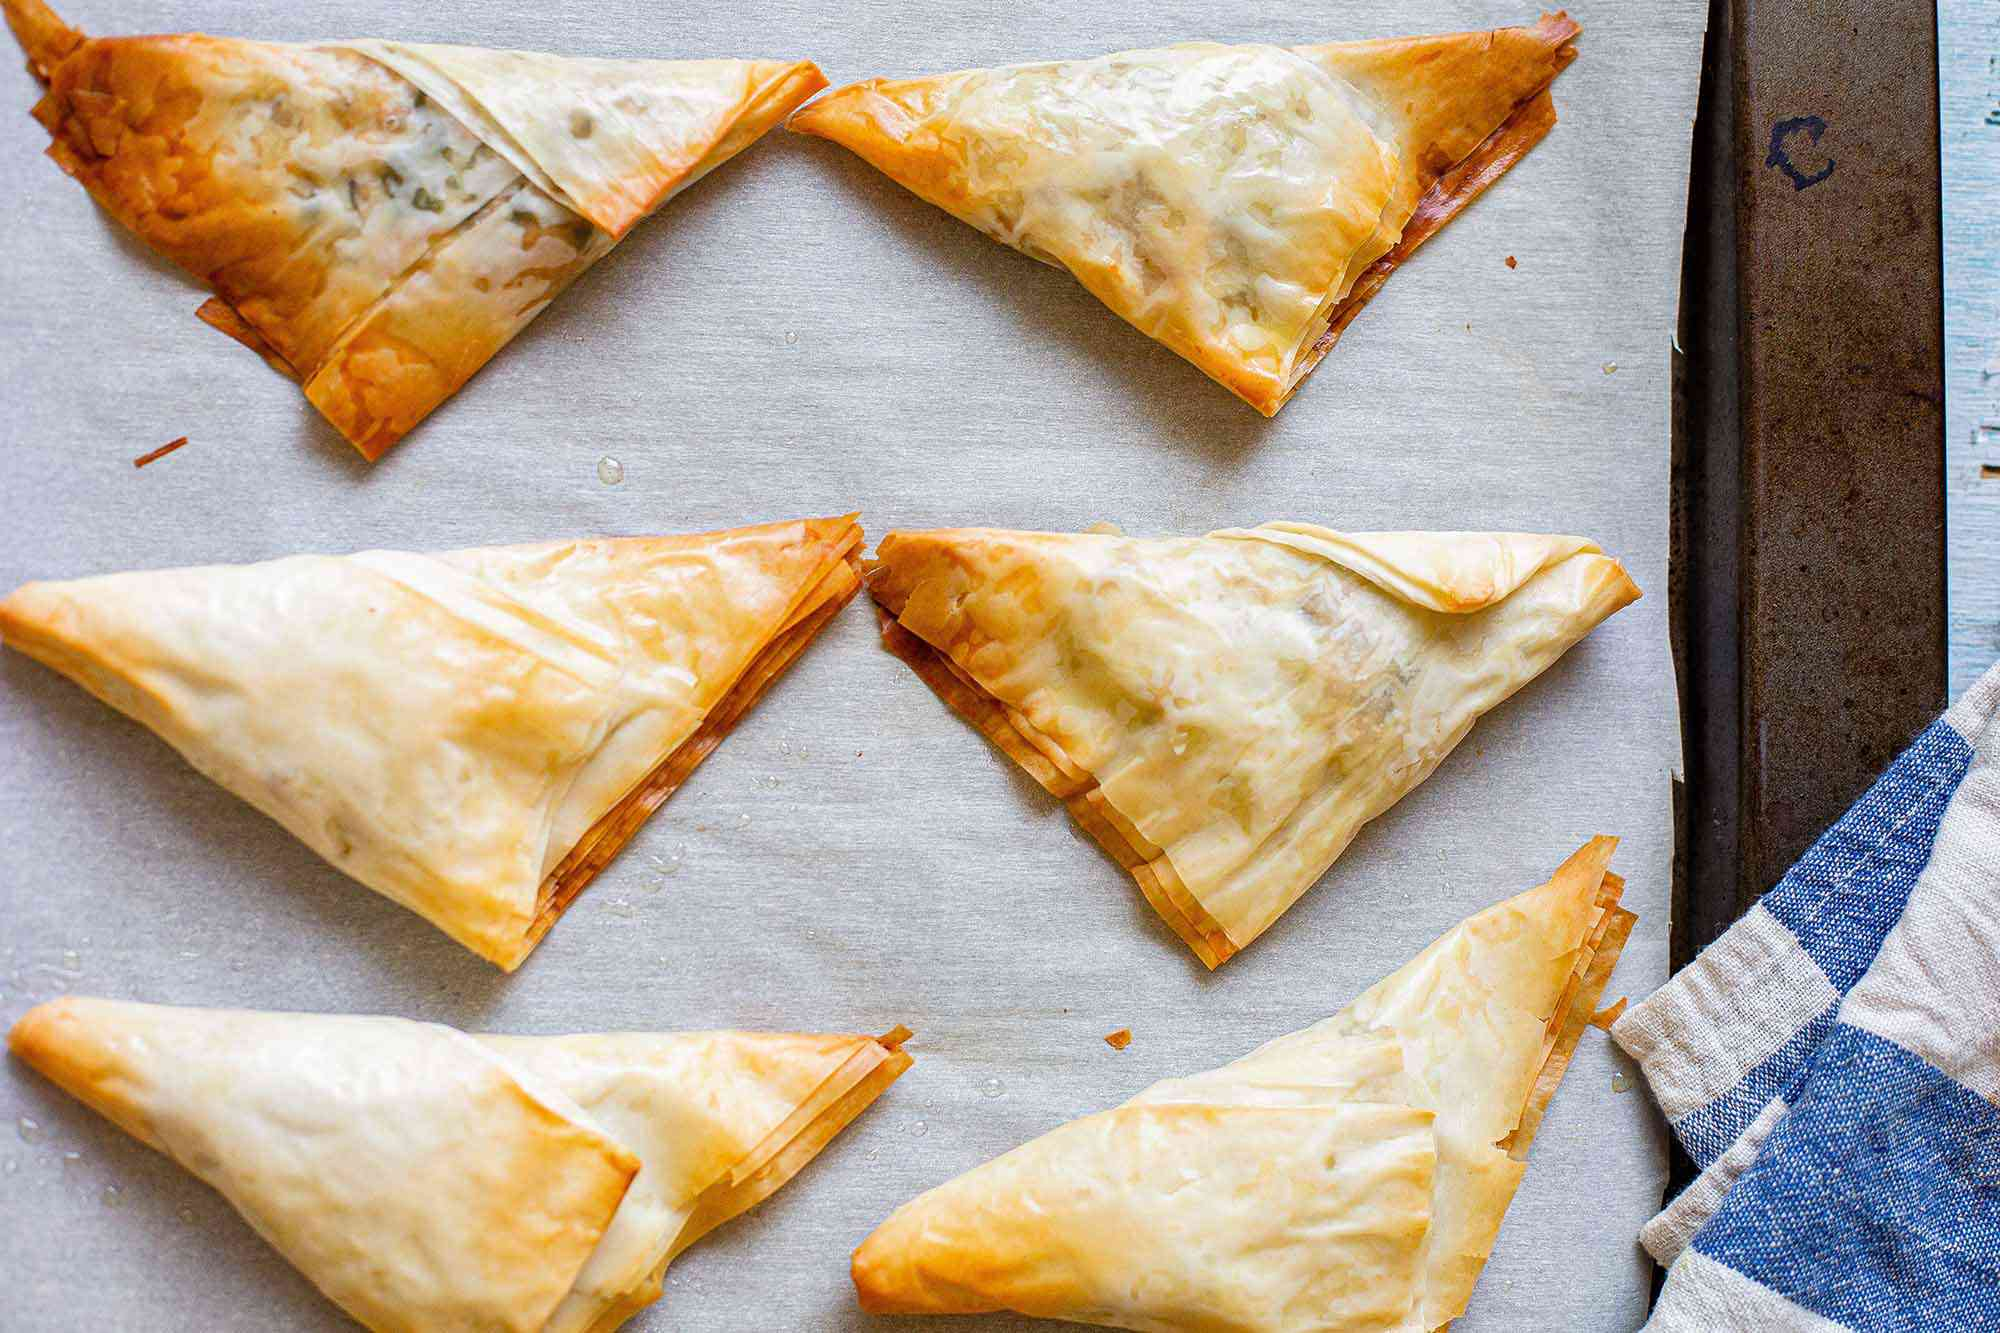 Easy Baked Indian Chicken Tikka Masala Samosa made with phyllo dough folded into a triangles on a baking sheet.